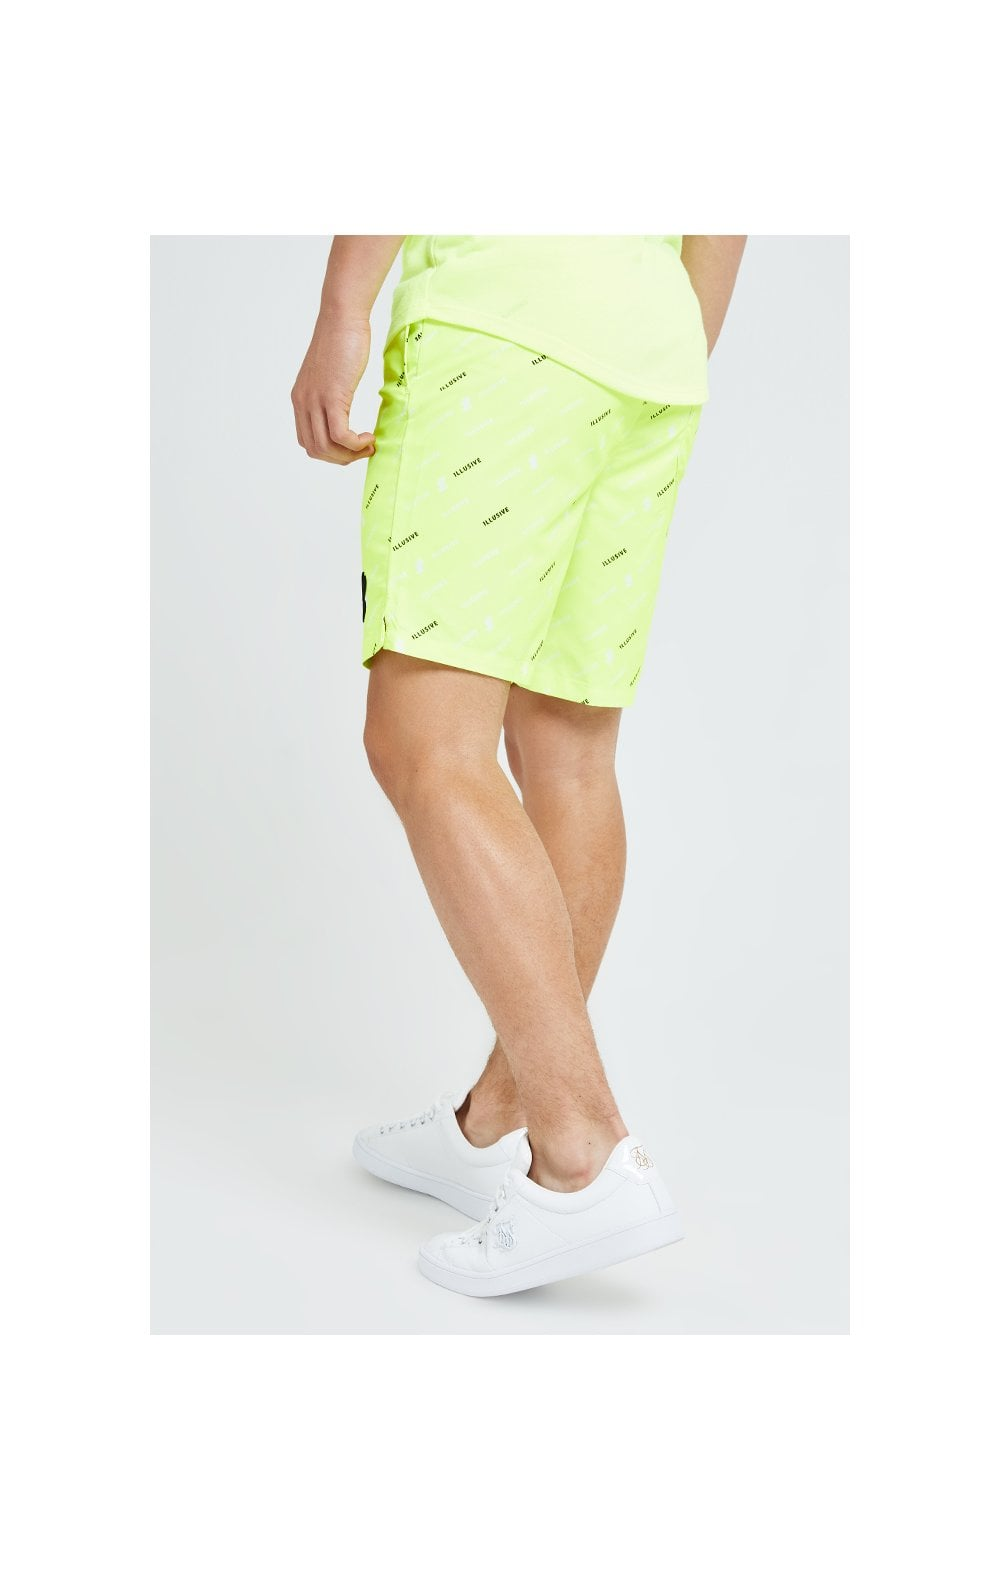 Illusive London AOP Swim Shorts - Neon Yellow (2)